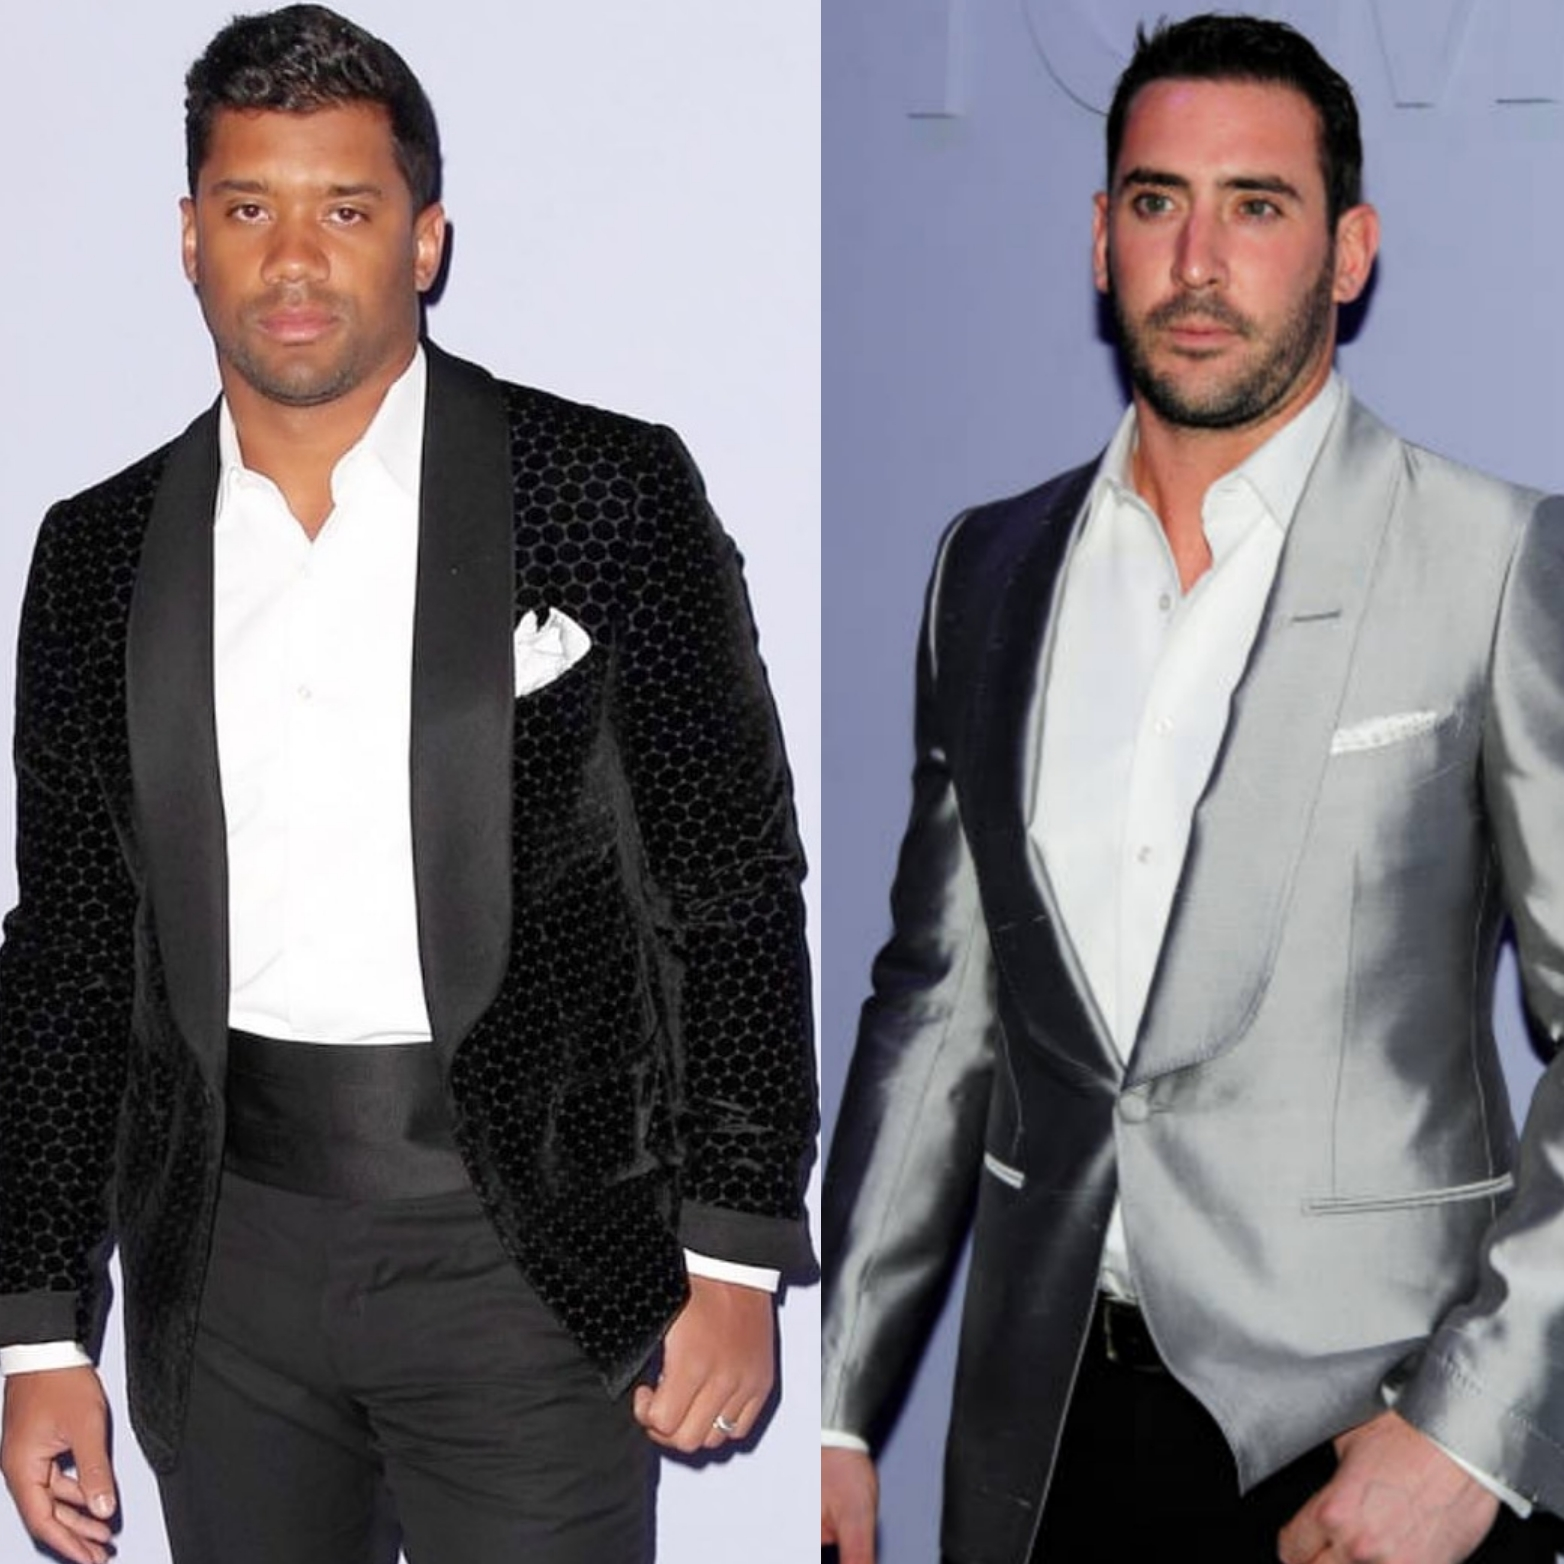 Russell Wilson And Matt Harvey Attend Tom Ford's New York Fashion Week Men's FW'18 Presentation